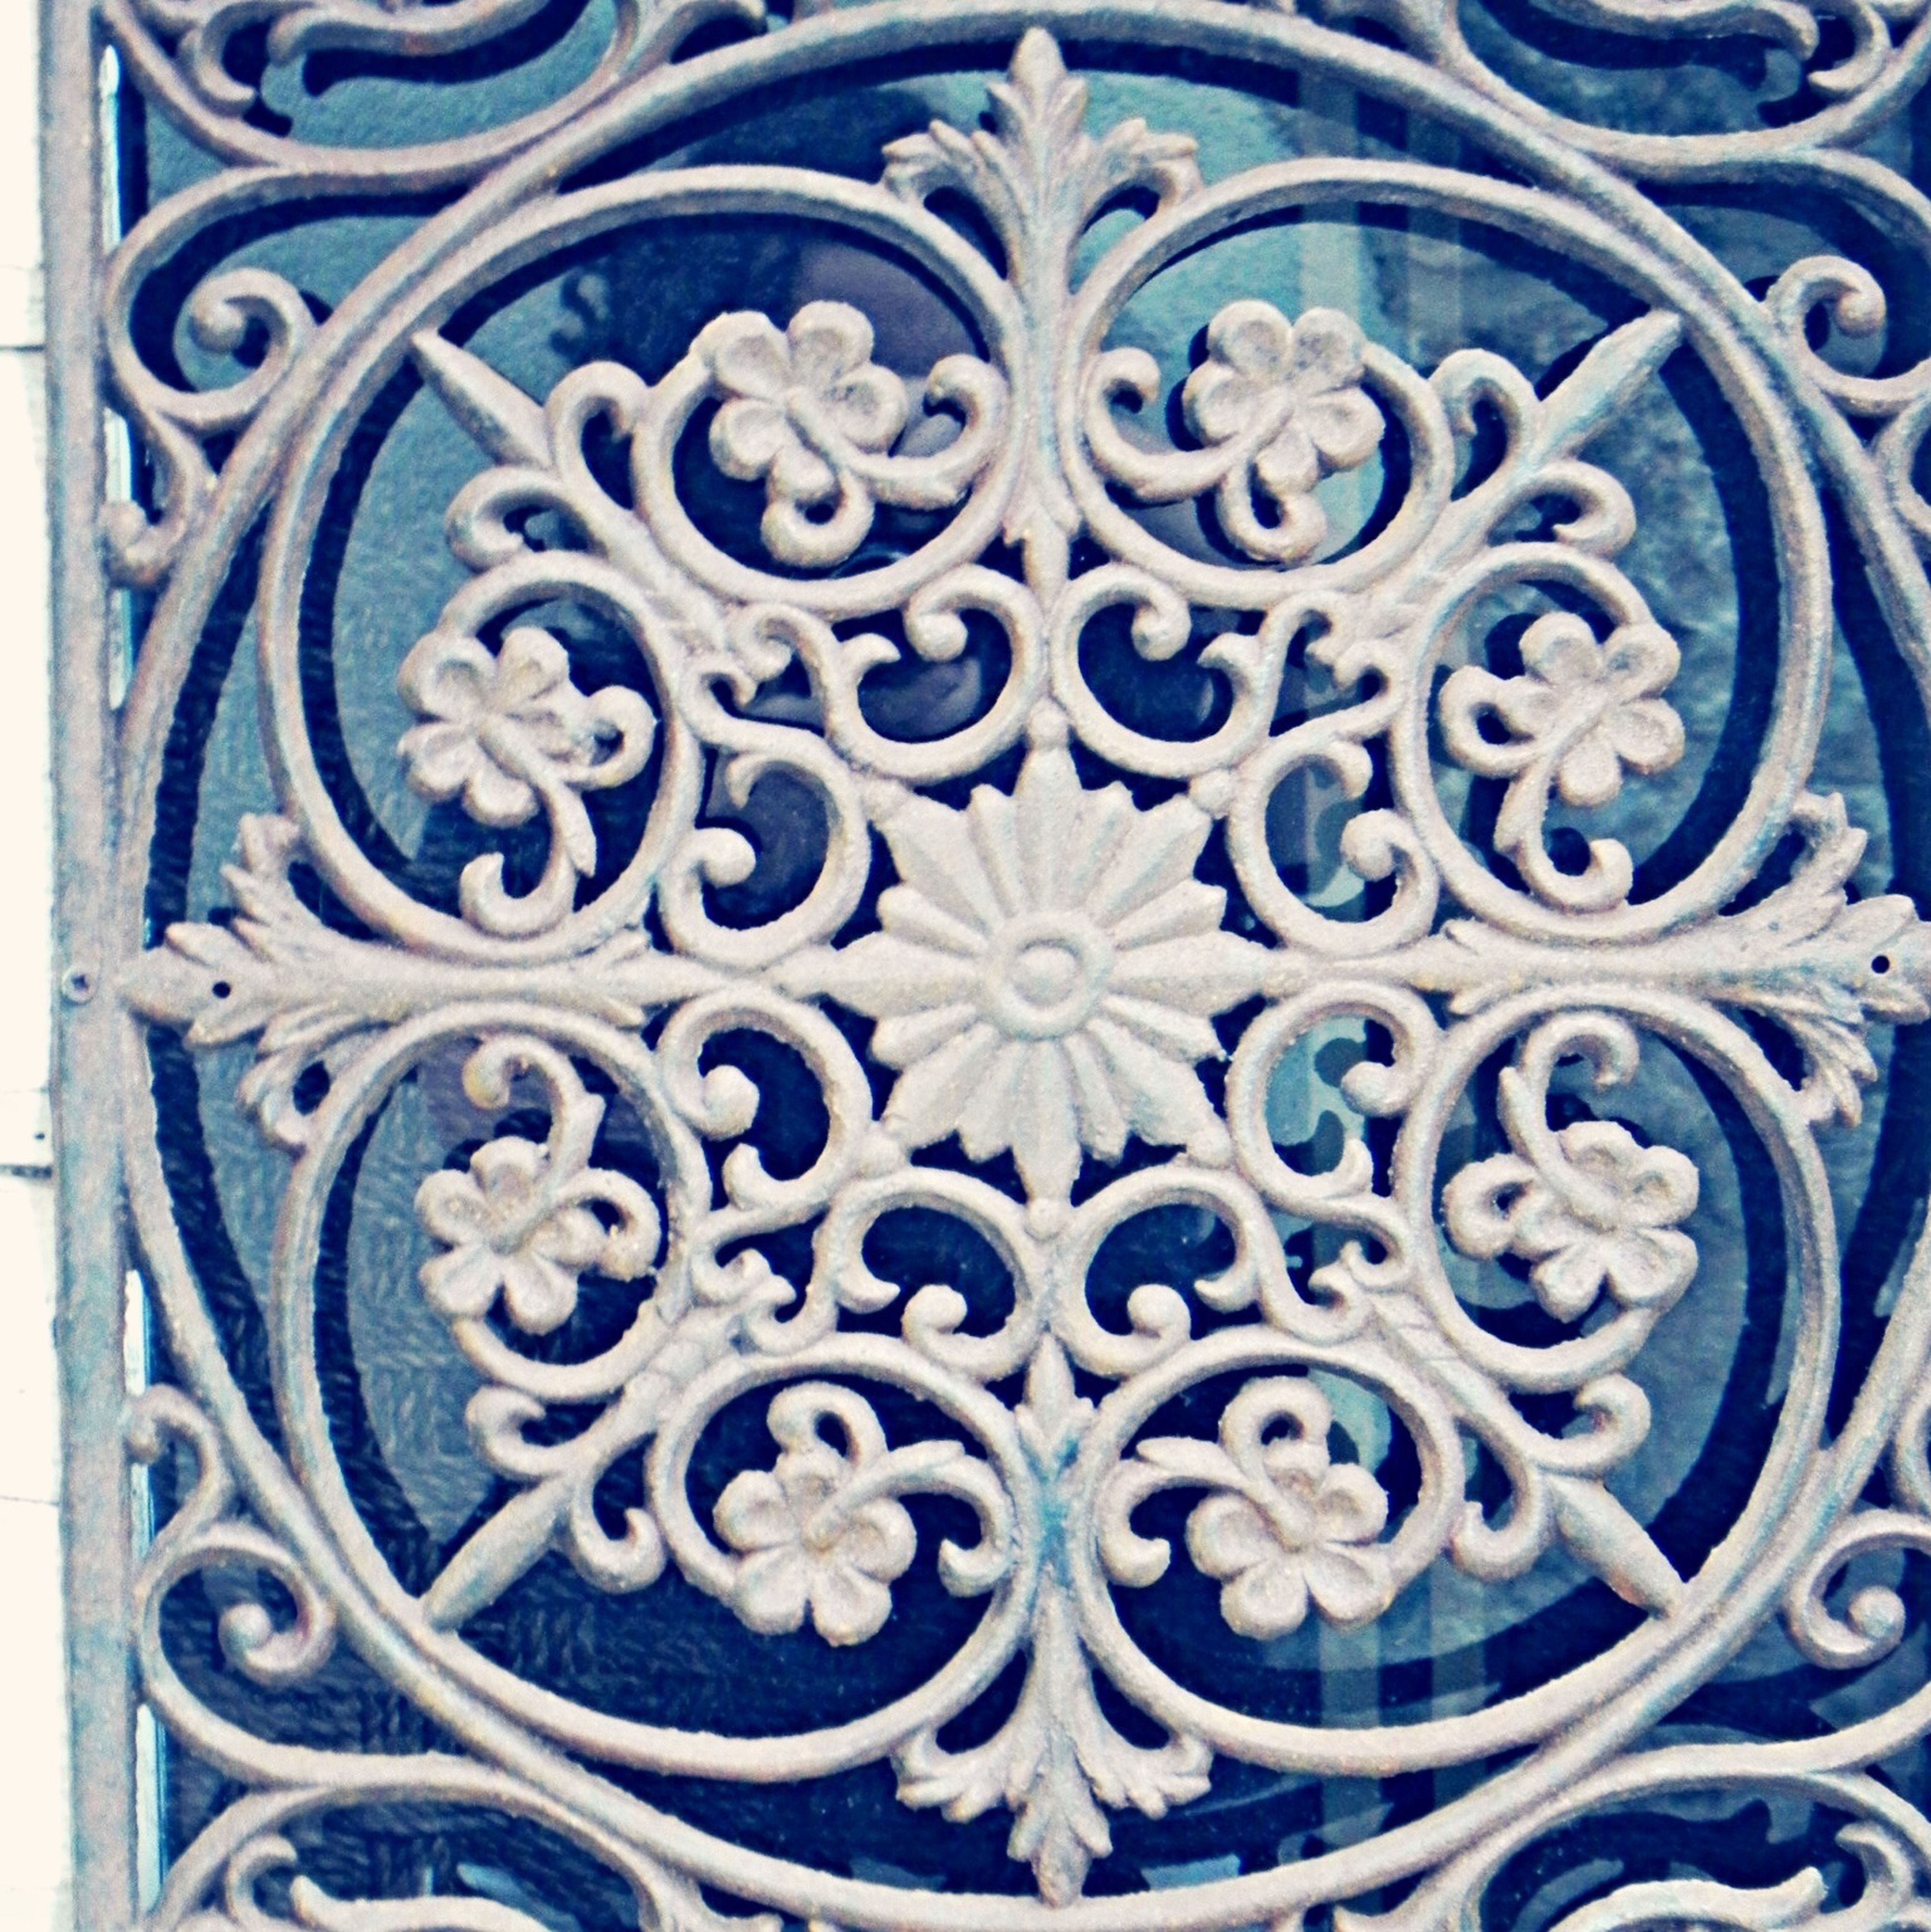 art and craft, art, indoors, creativity, design, pattern, floral pattern, ornate, close-up, wall - building feature, full frame, decoration, no people, carving - craft product, human representation, backgrounds, wall, built structure, architecture, craft